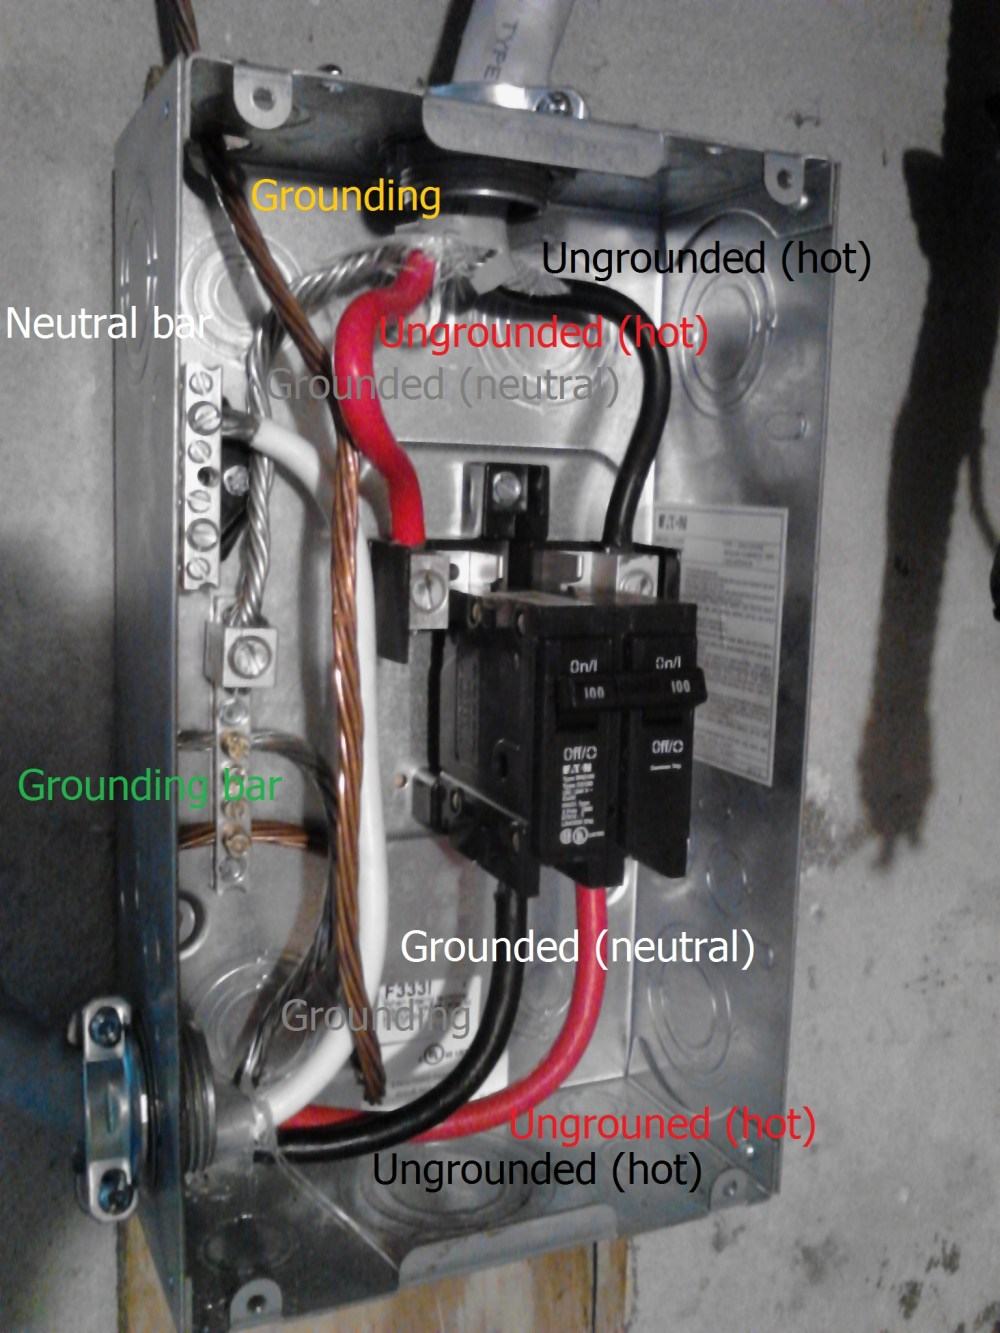 medium resolution of electrical what is wrong with this panel wiring home sub and amp wiring diagram home wiring a sub